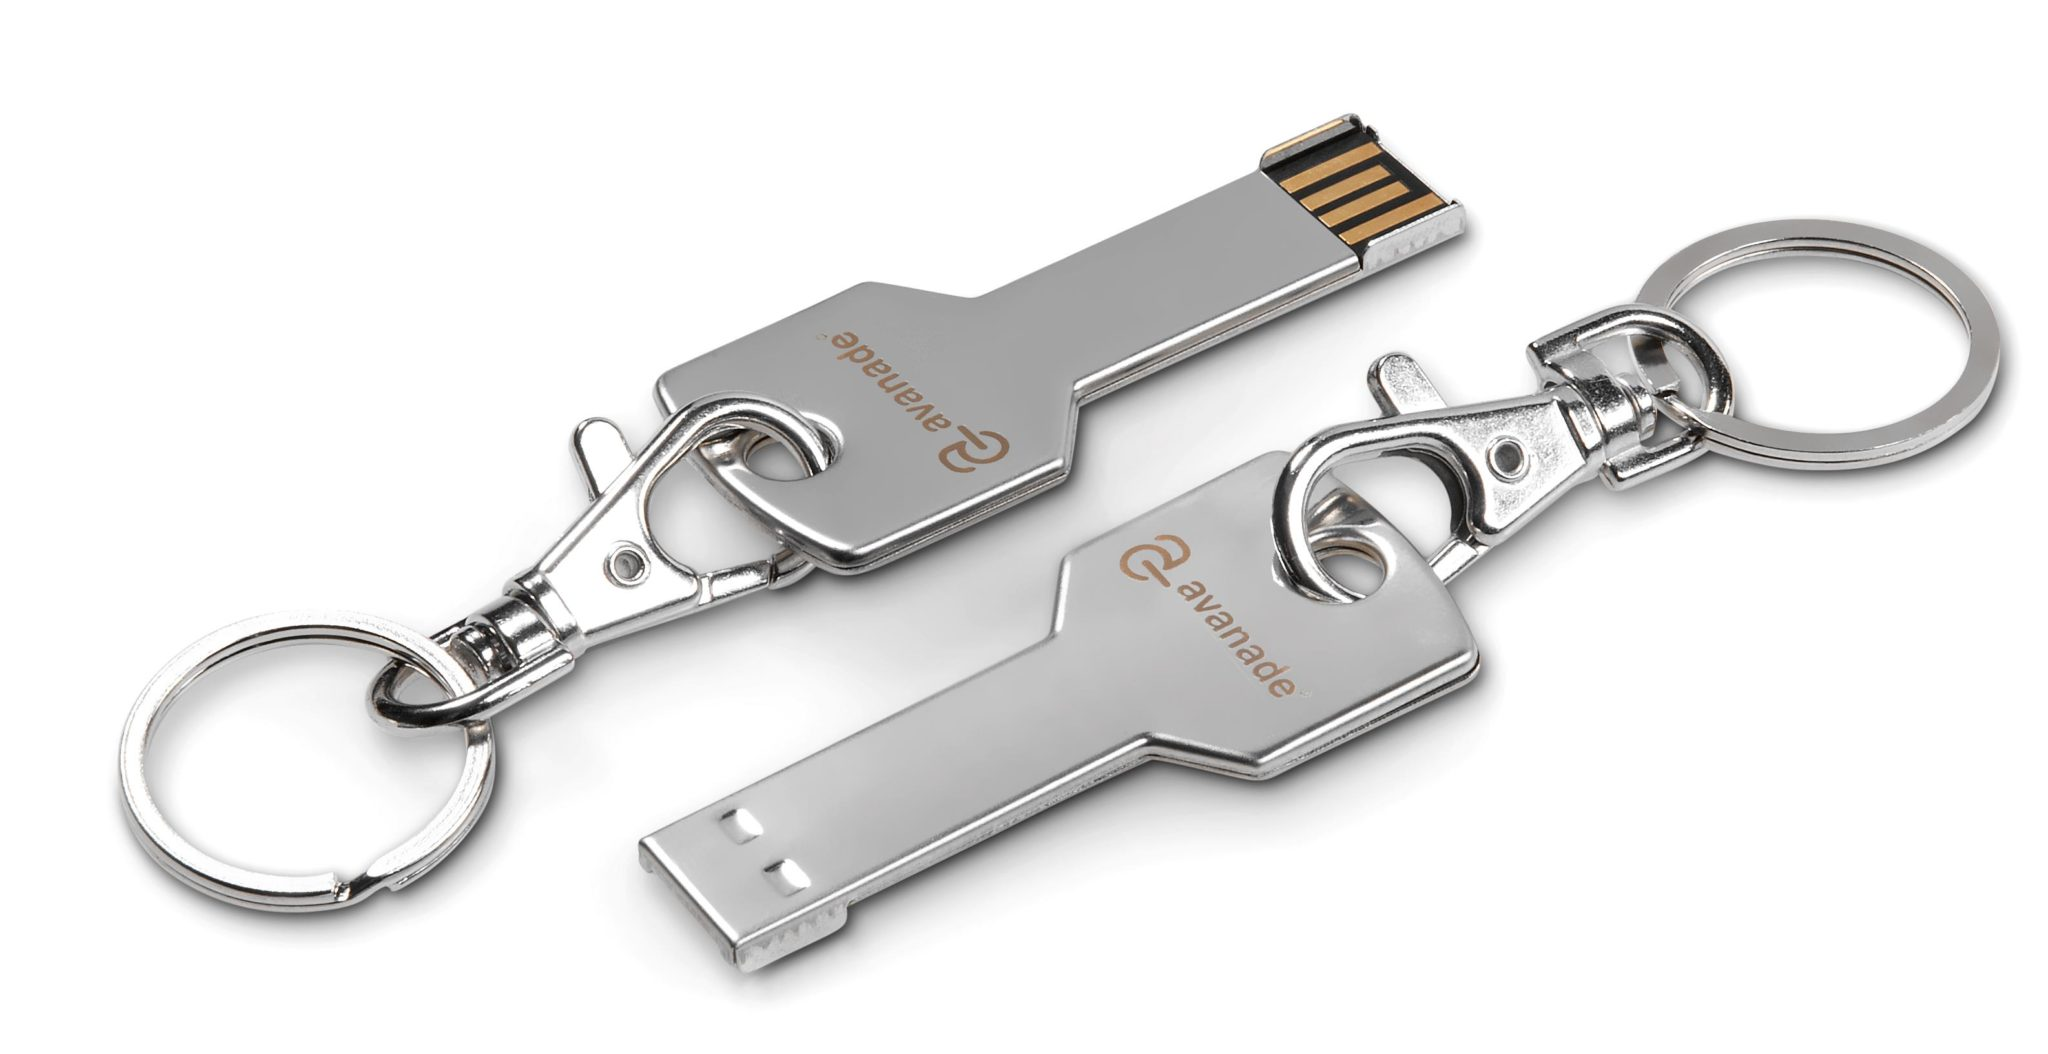 The cool Keyes memory stick